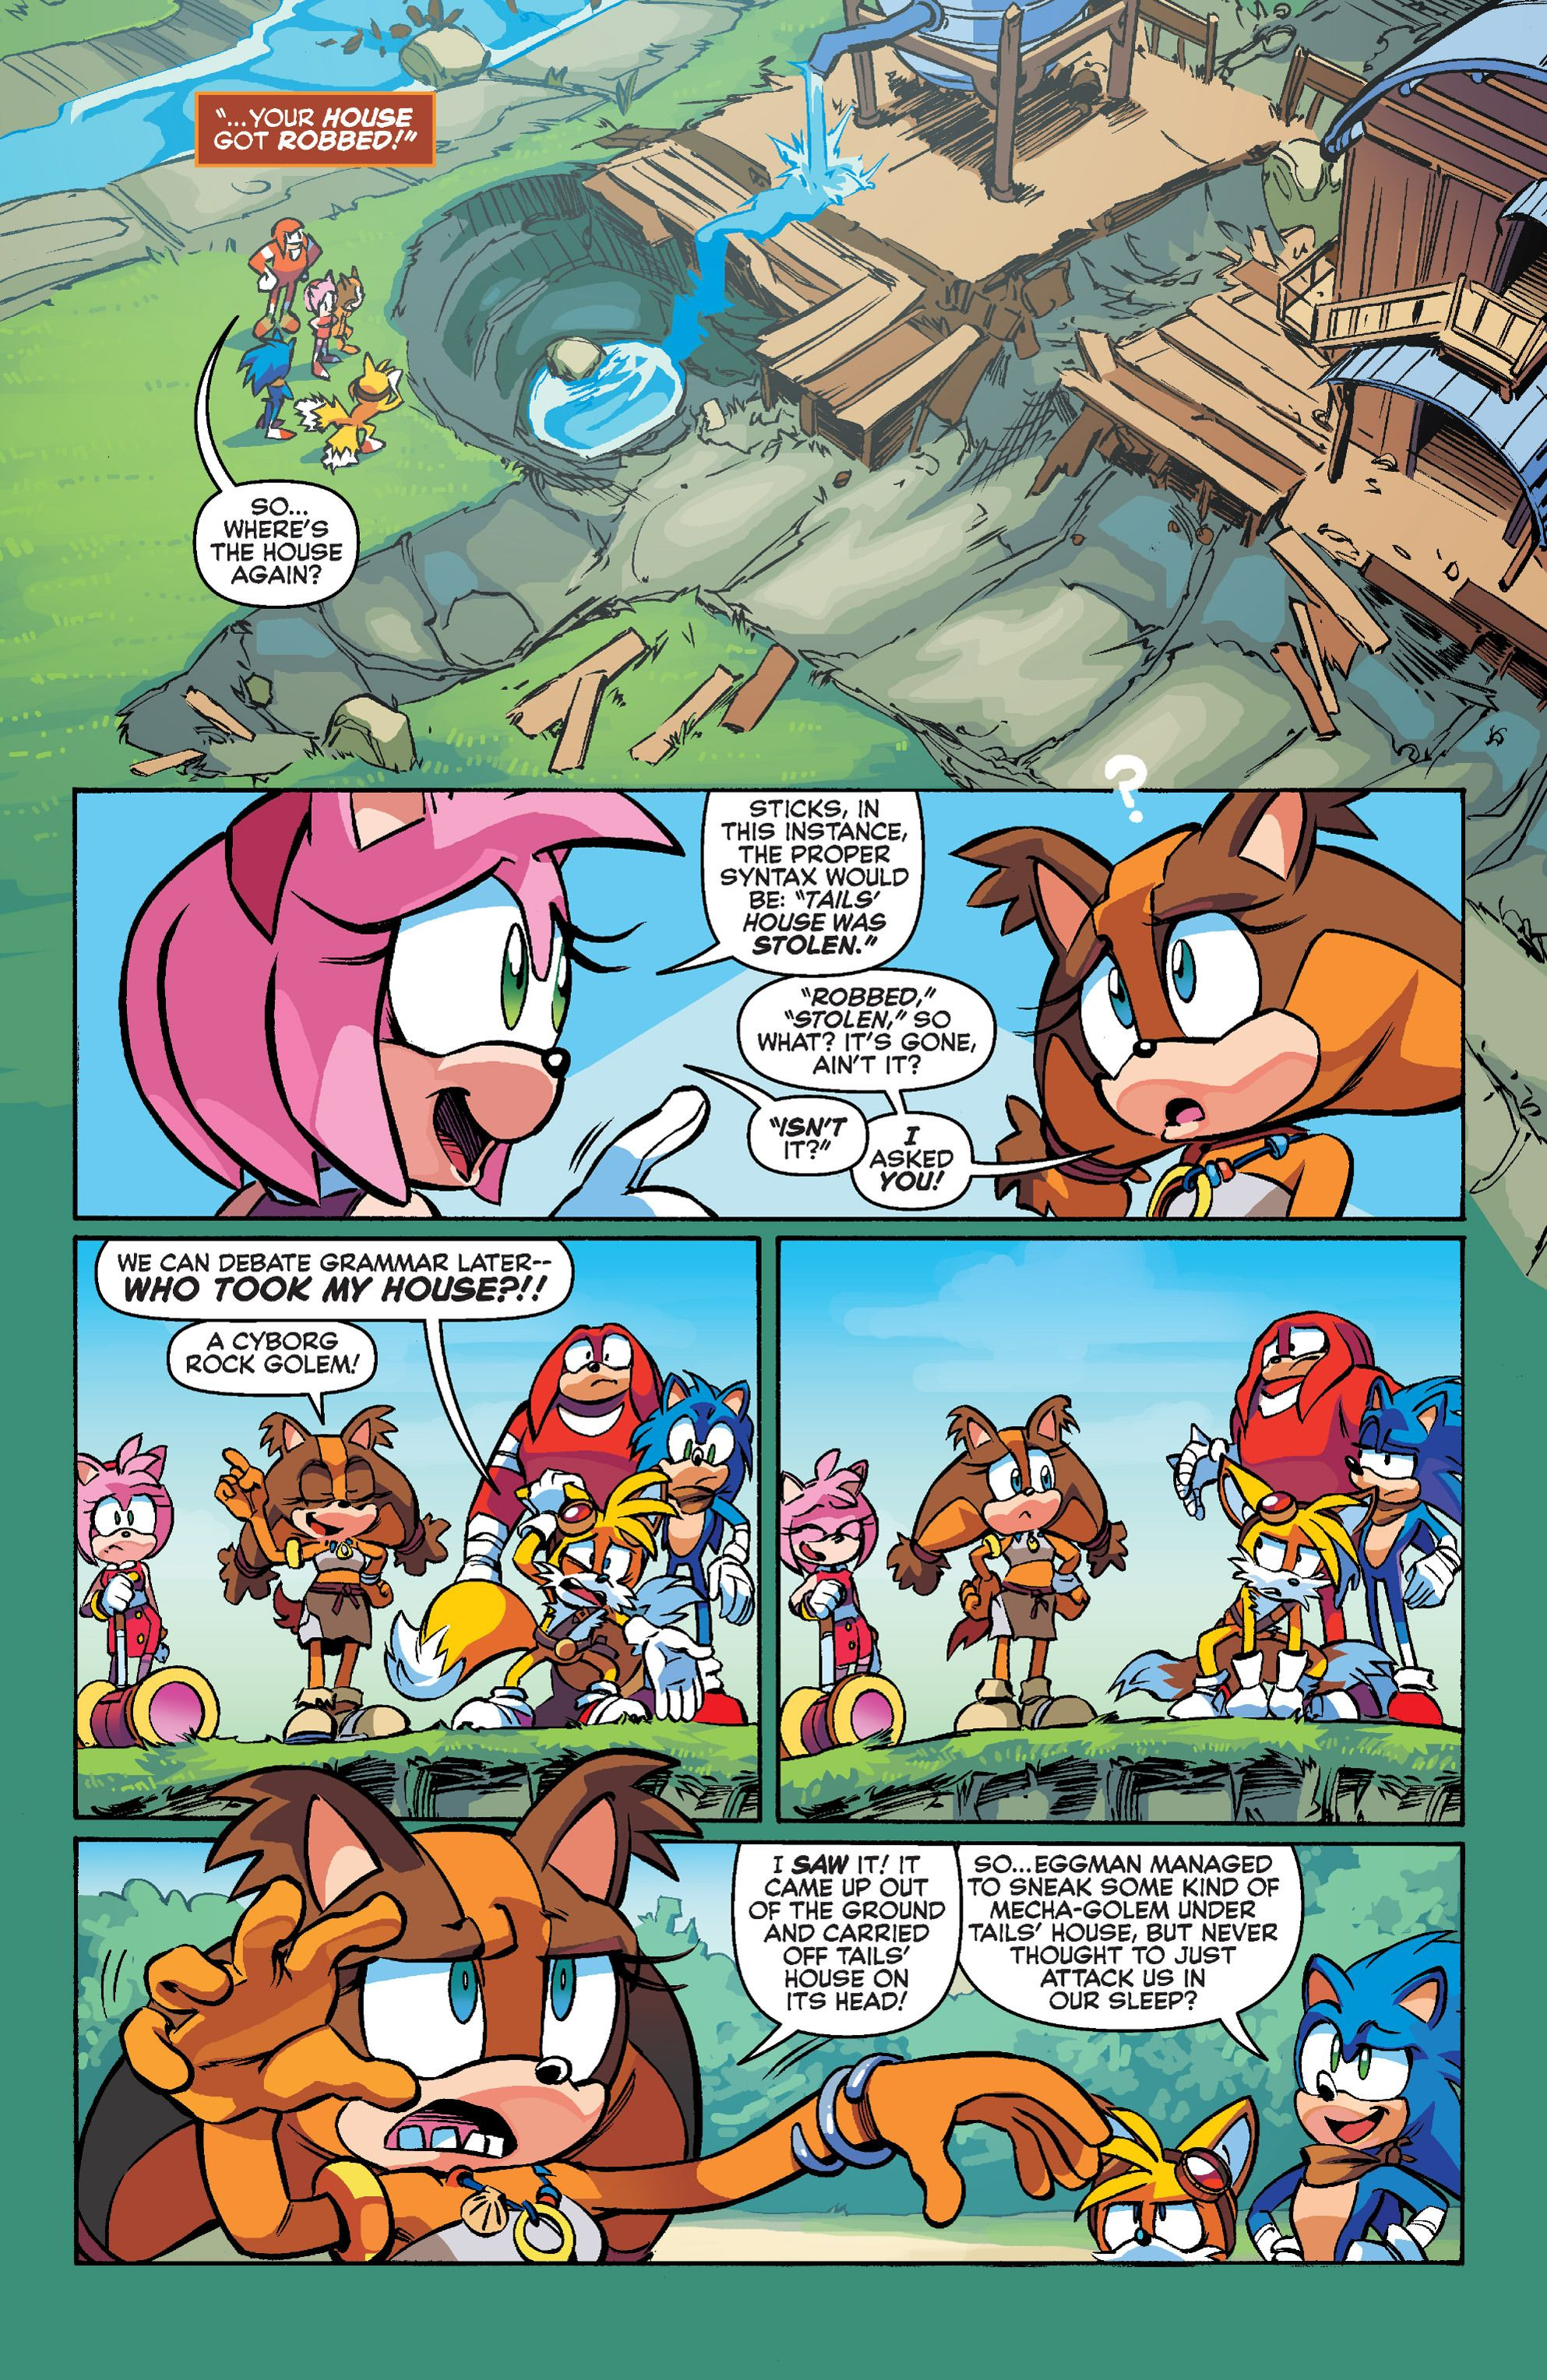 Sonic Boom Issue 1 Read Sonic Boom Issue 1 Comic Online In High Quality Comics Sonic Sonic Boom